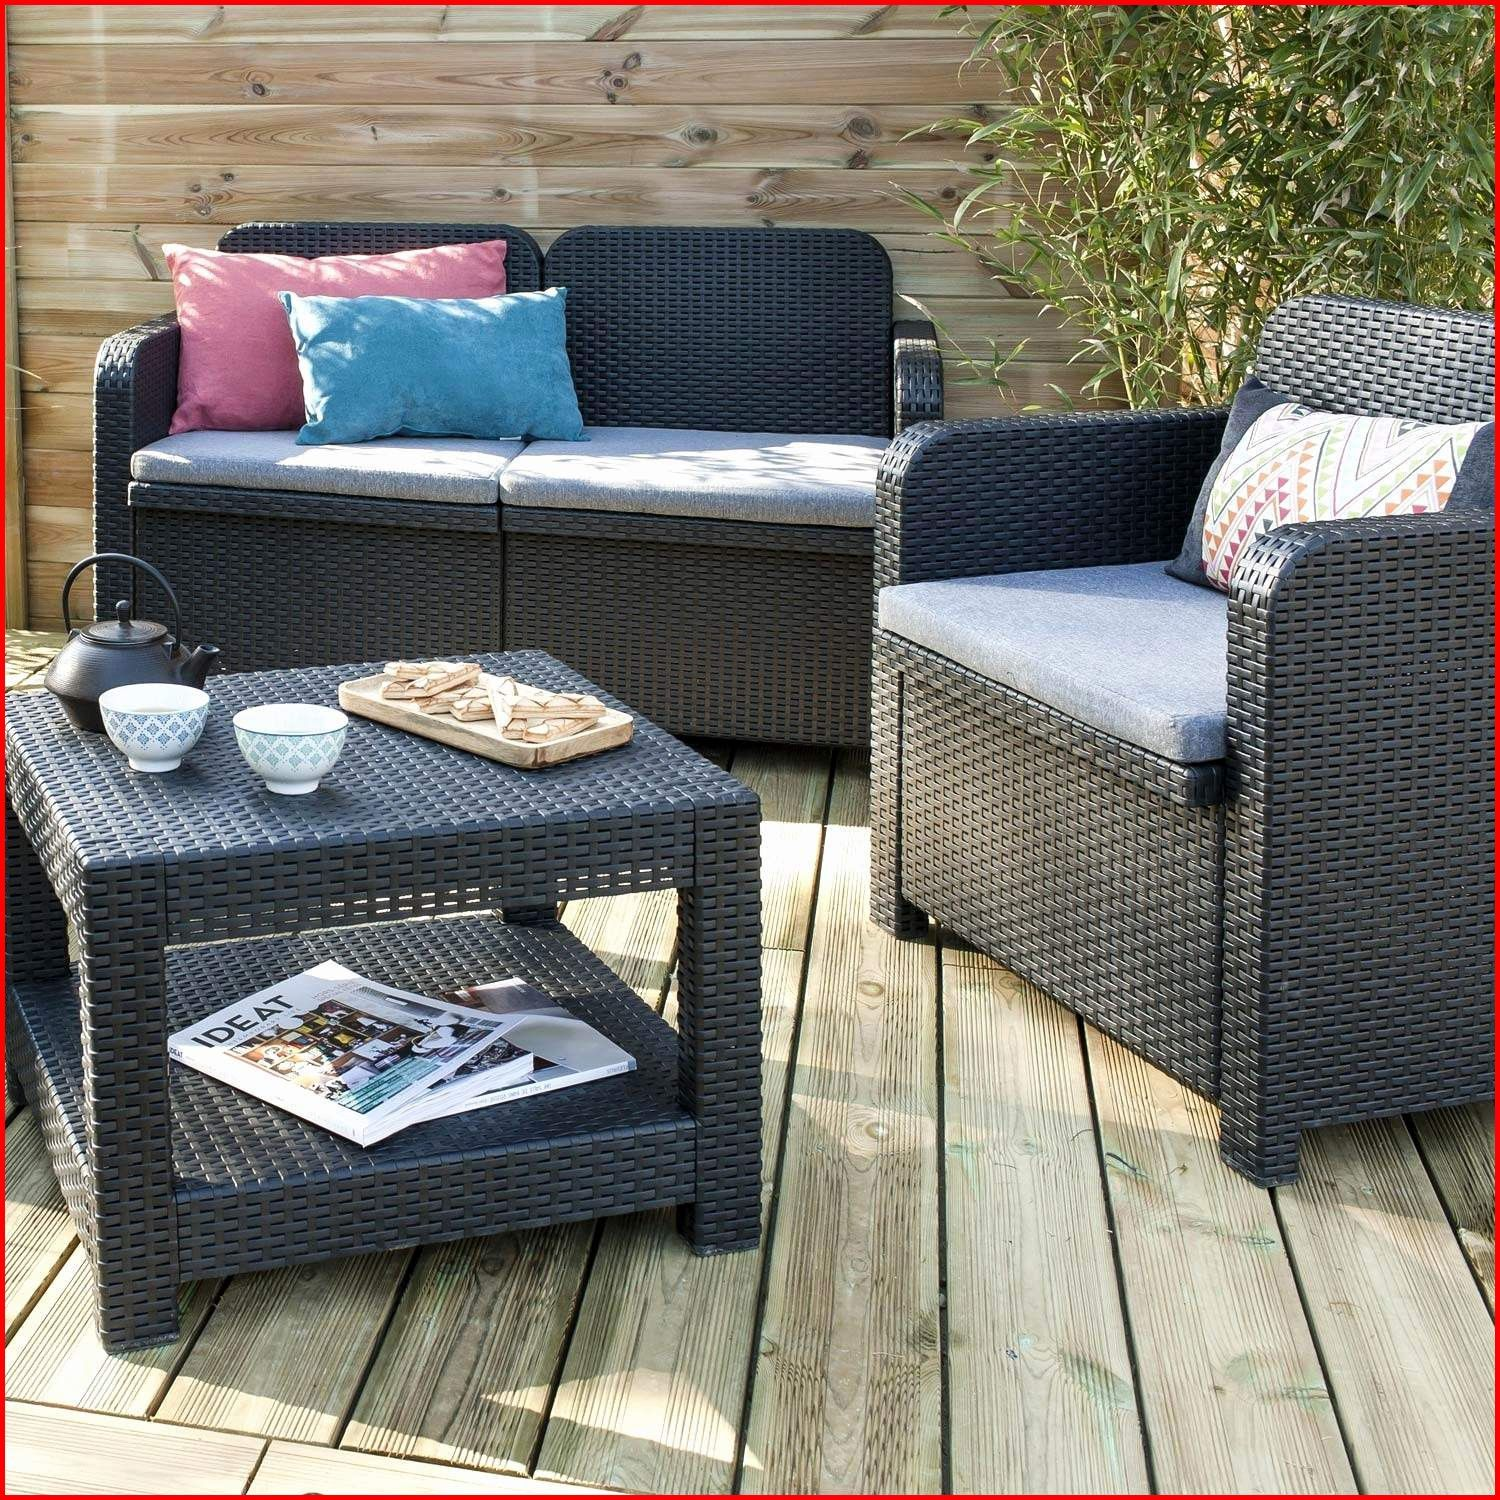 Villaverde Antibes Mobilier De Jardin Outdoor Furniture Outdoor Furniture Sets Outdoor